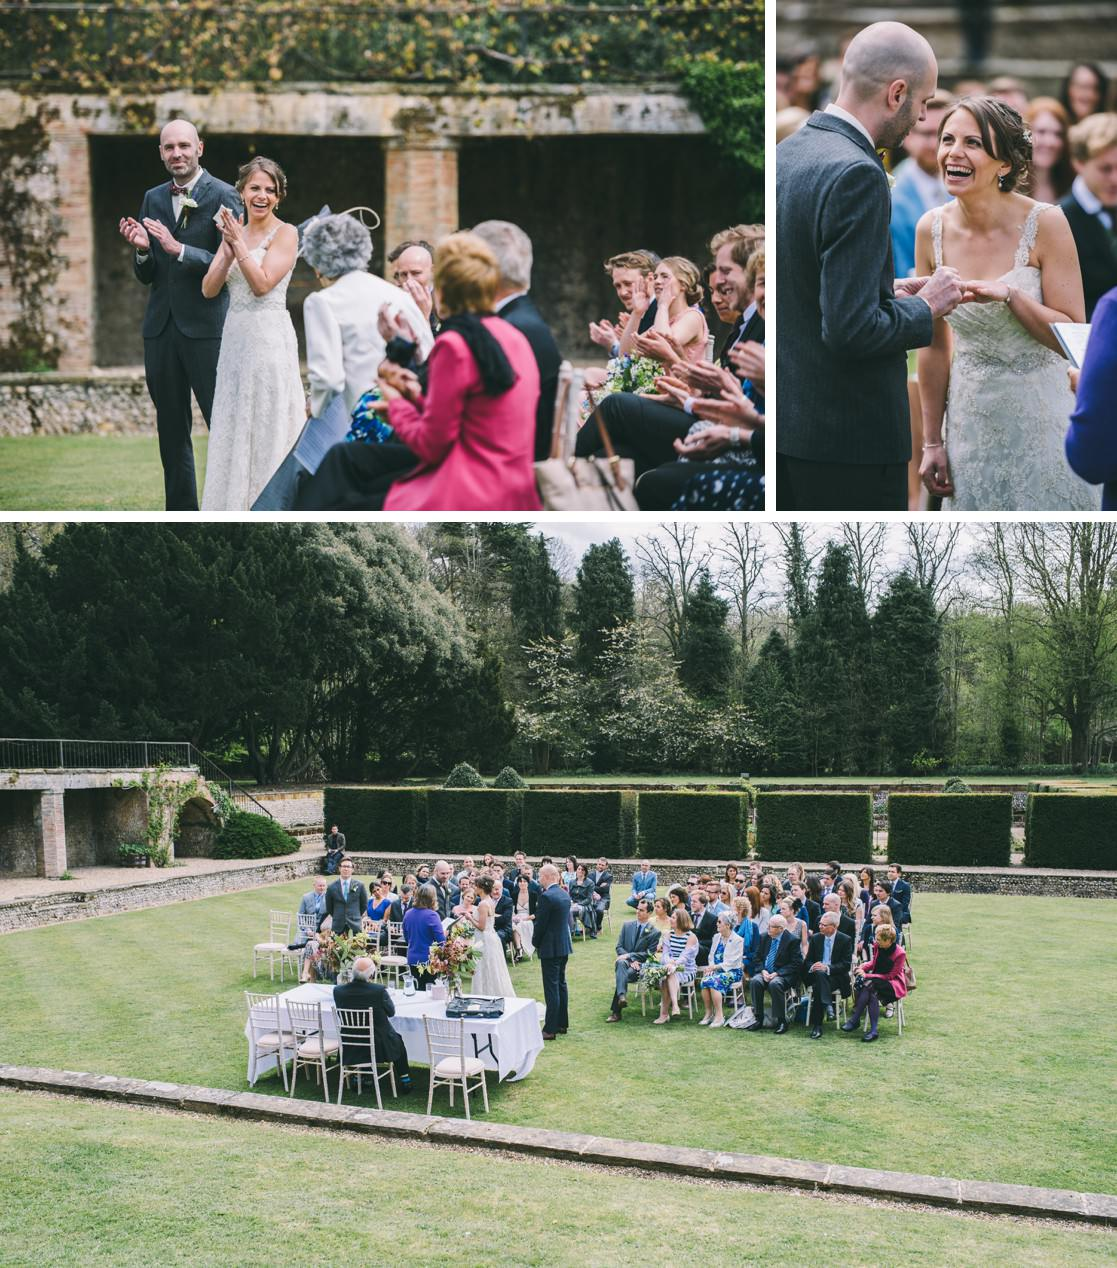 Paul-And-Hannah-Voewood-House-Wedding-By-Norfolk-And-Suffolk-Wedding-Photographer-James-Powell-Photography_0095.jpg